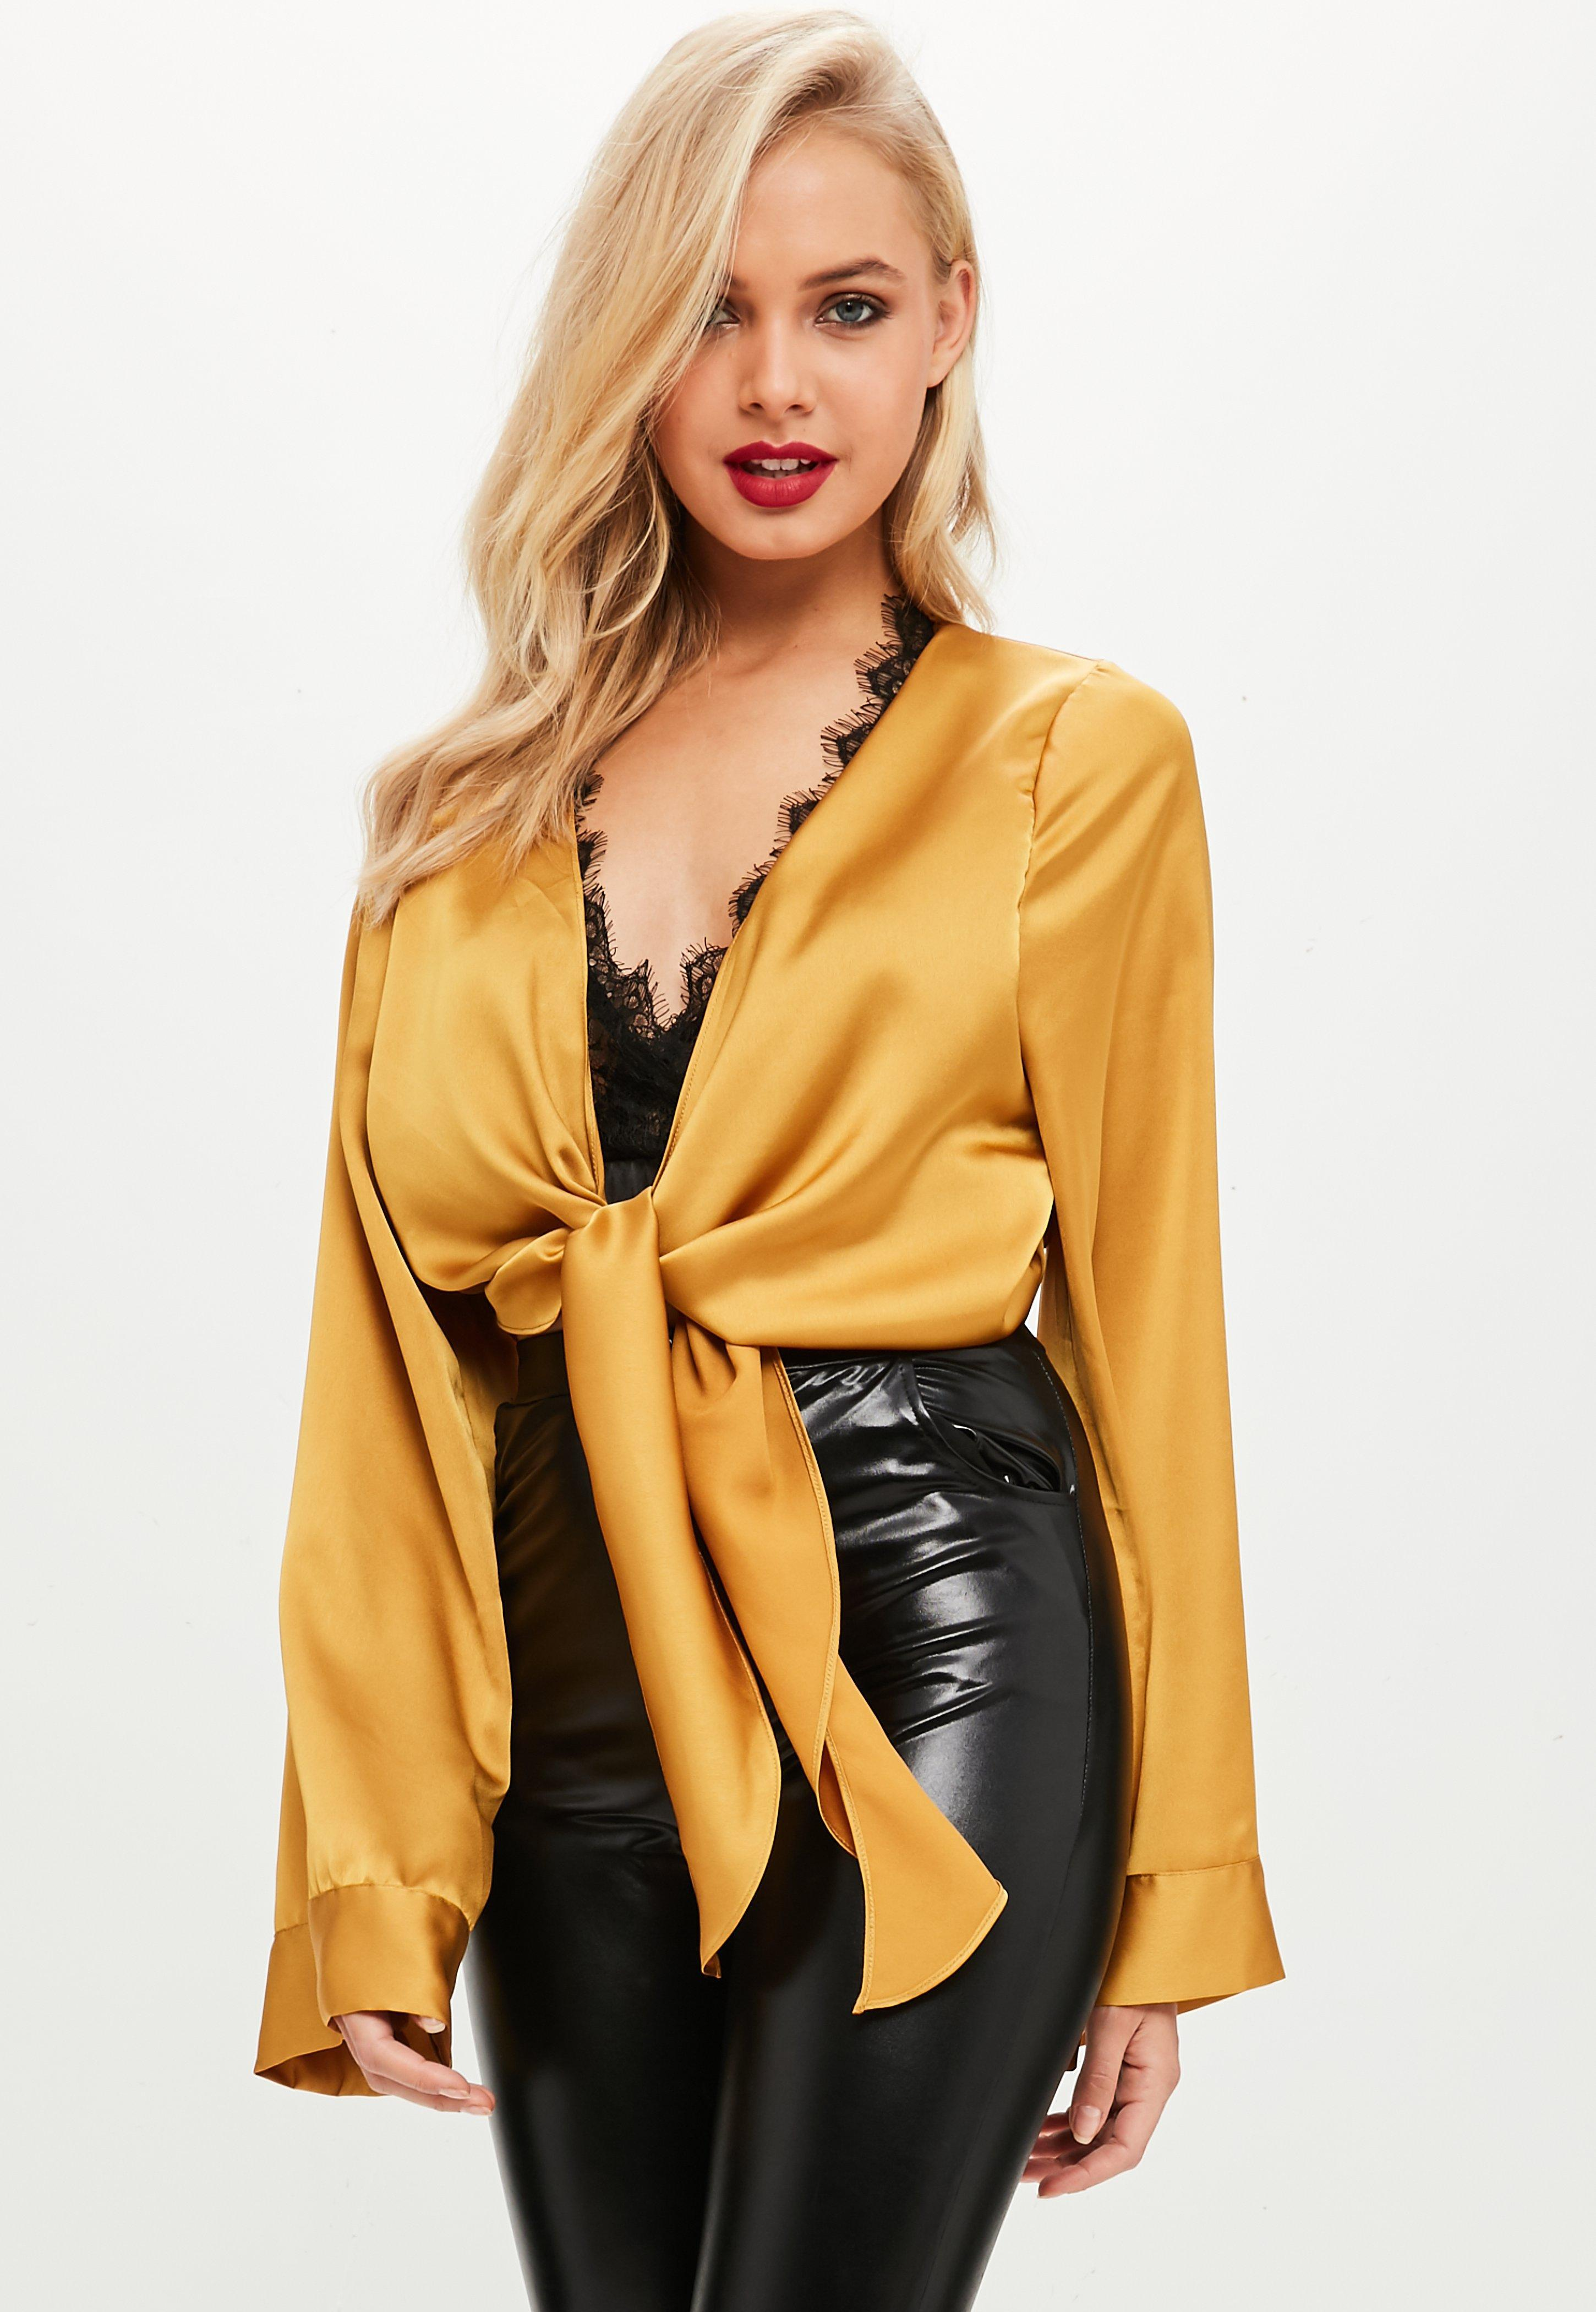 a89290eae1bb19 Lyst - Missguided Mustard Yellow Satin Tie Front Lace Trim Crop Top ...